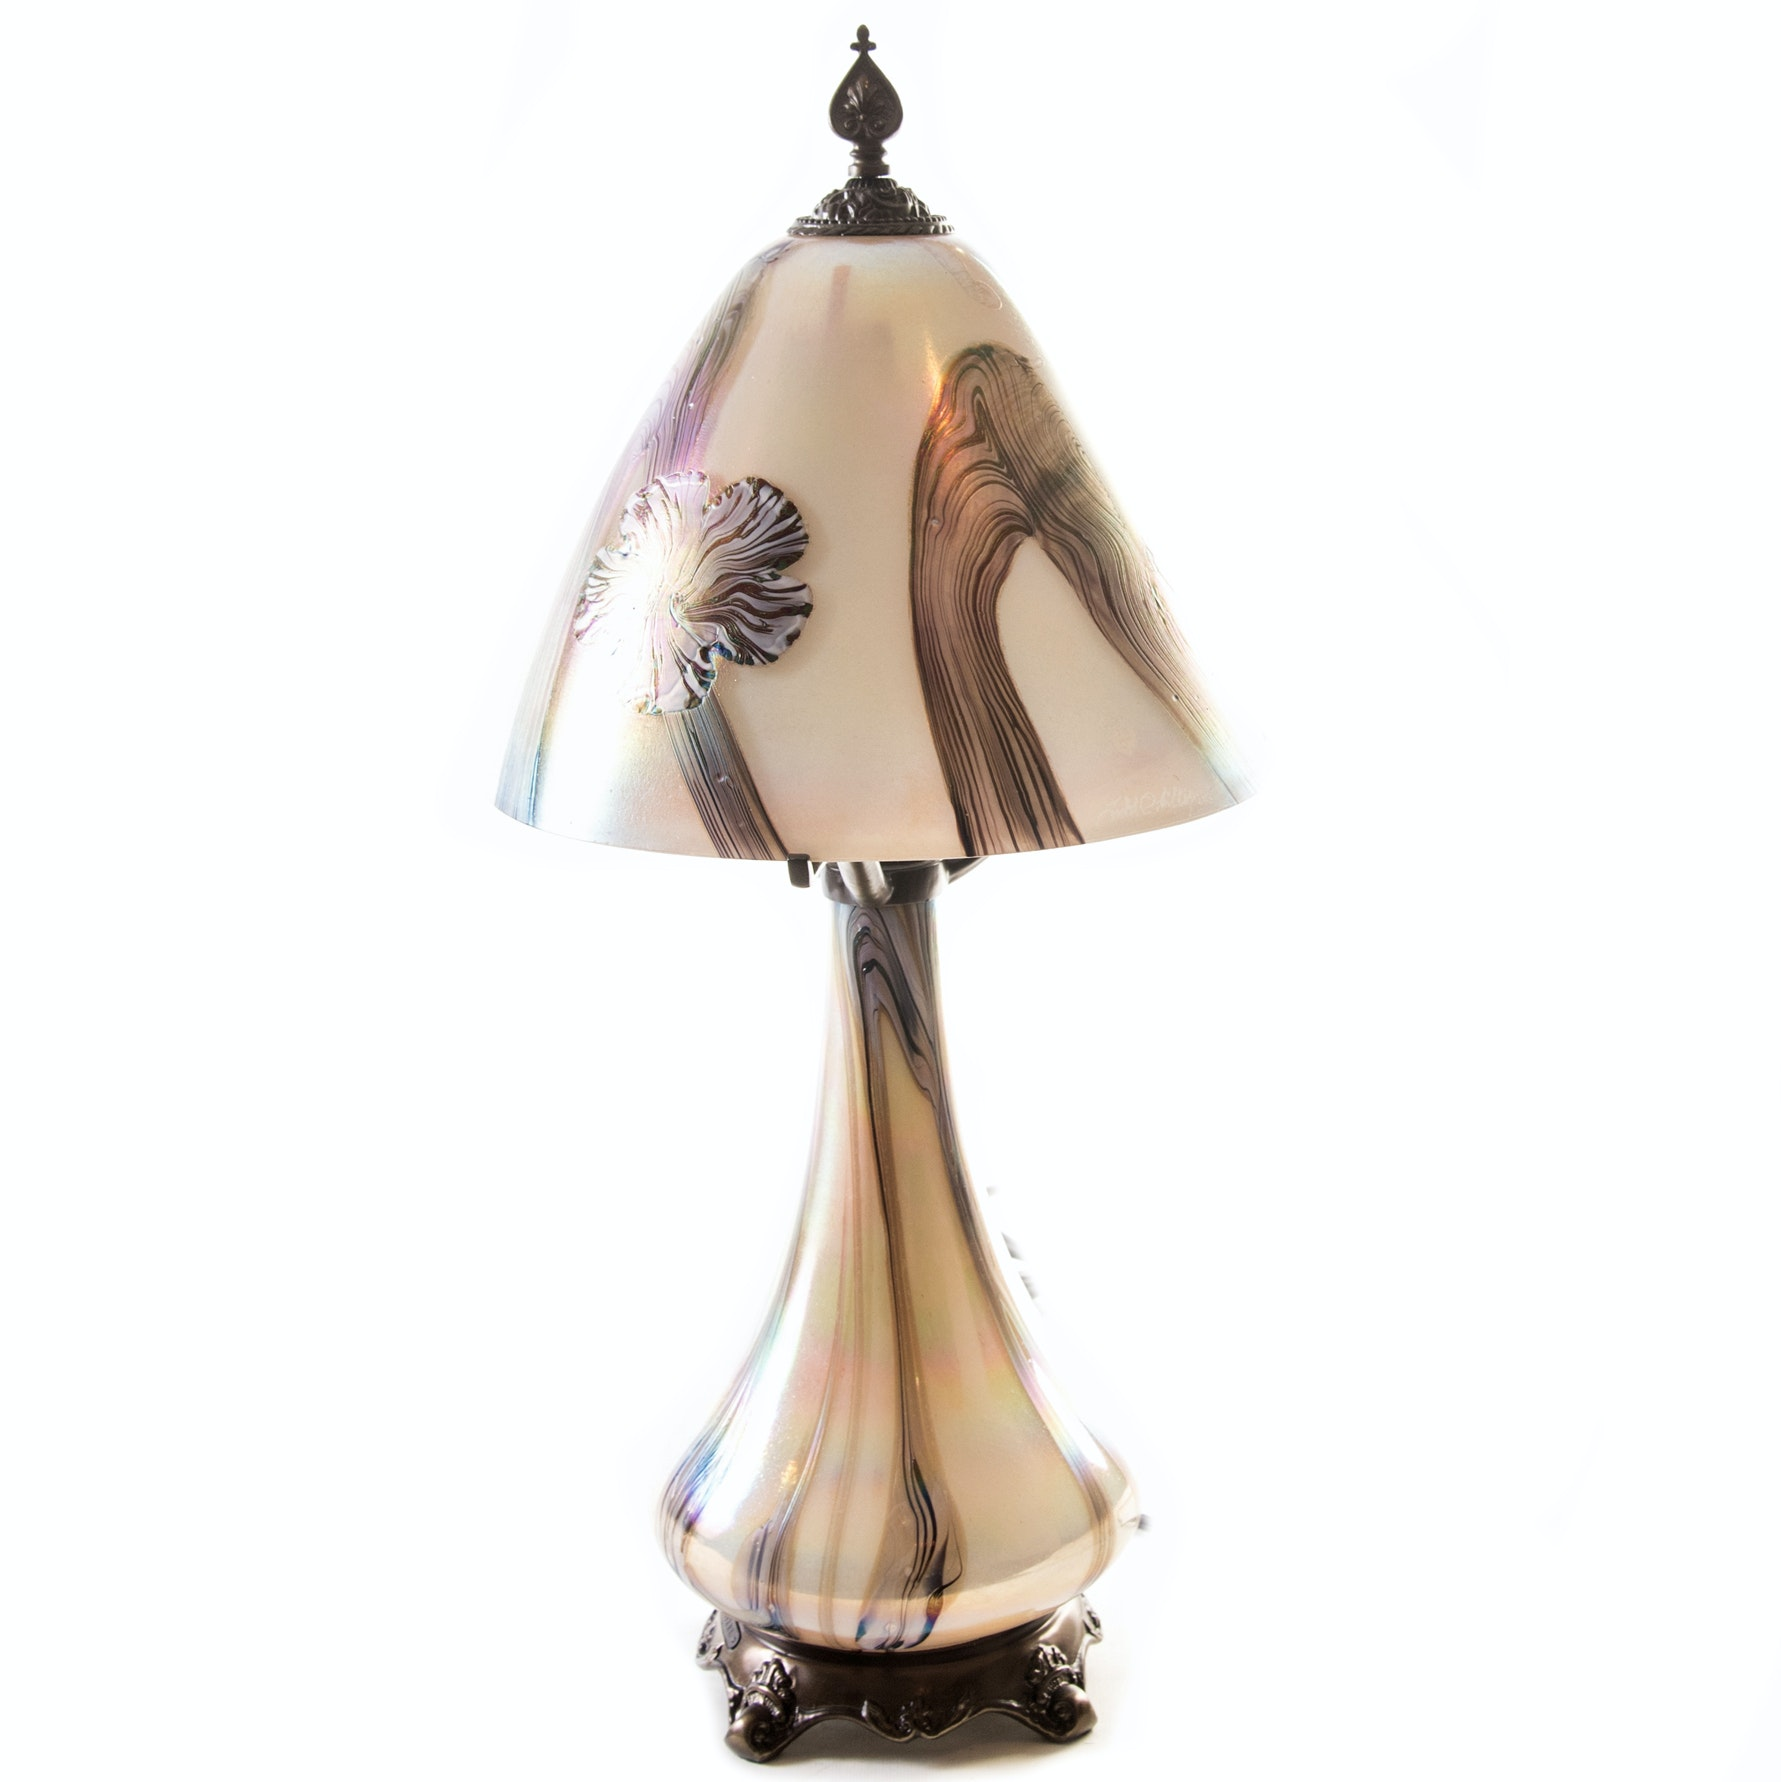 Floral Iridescent Glass Lamp by Todd Phillips For Quoizel, Inc.